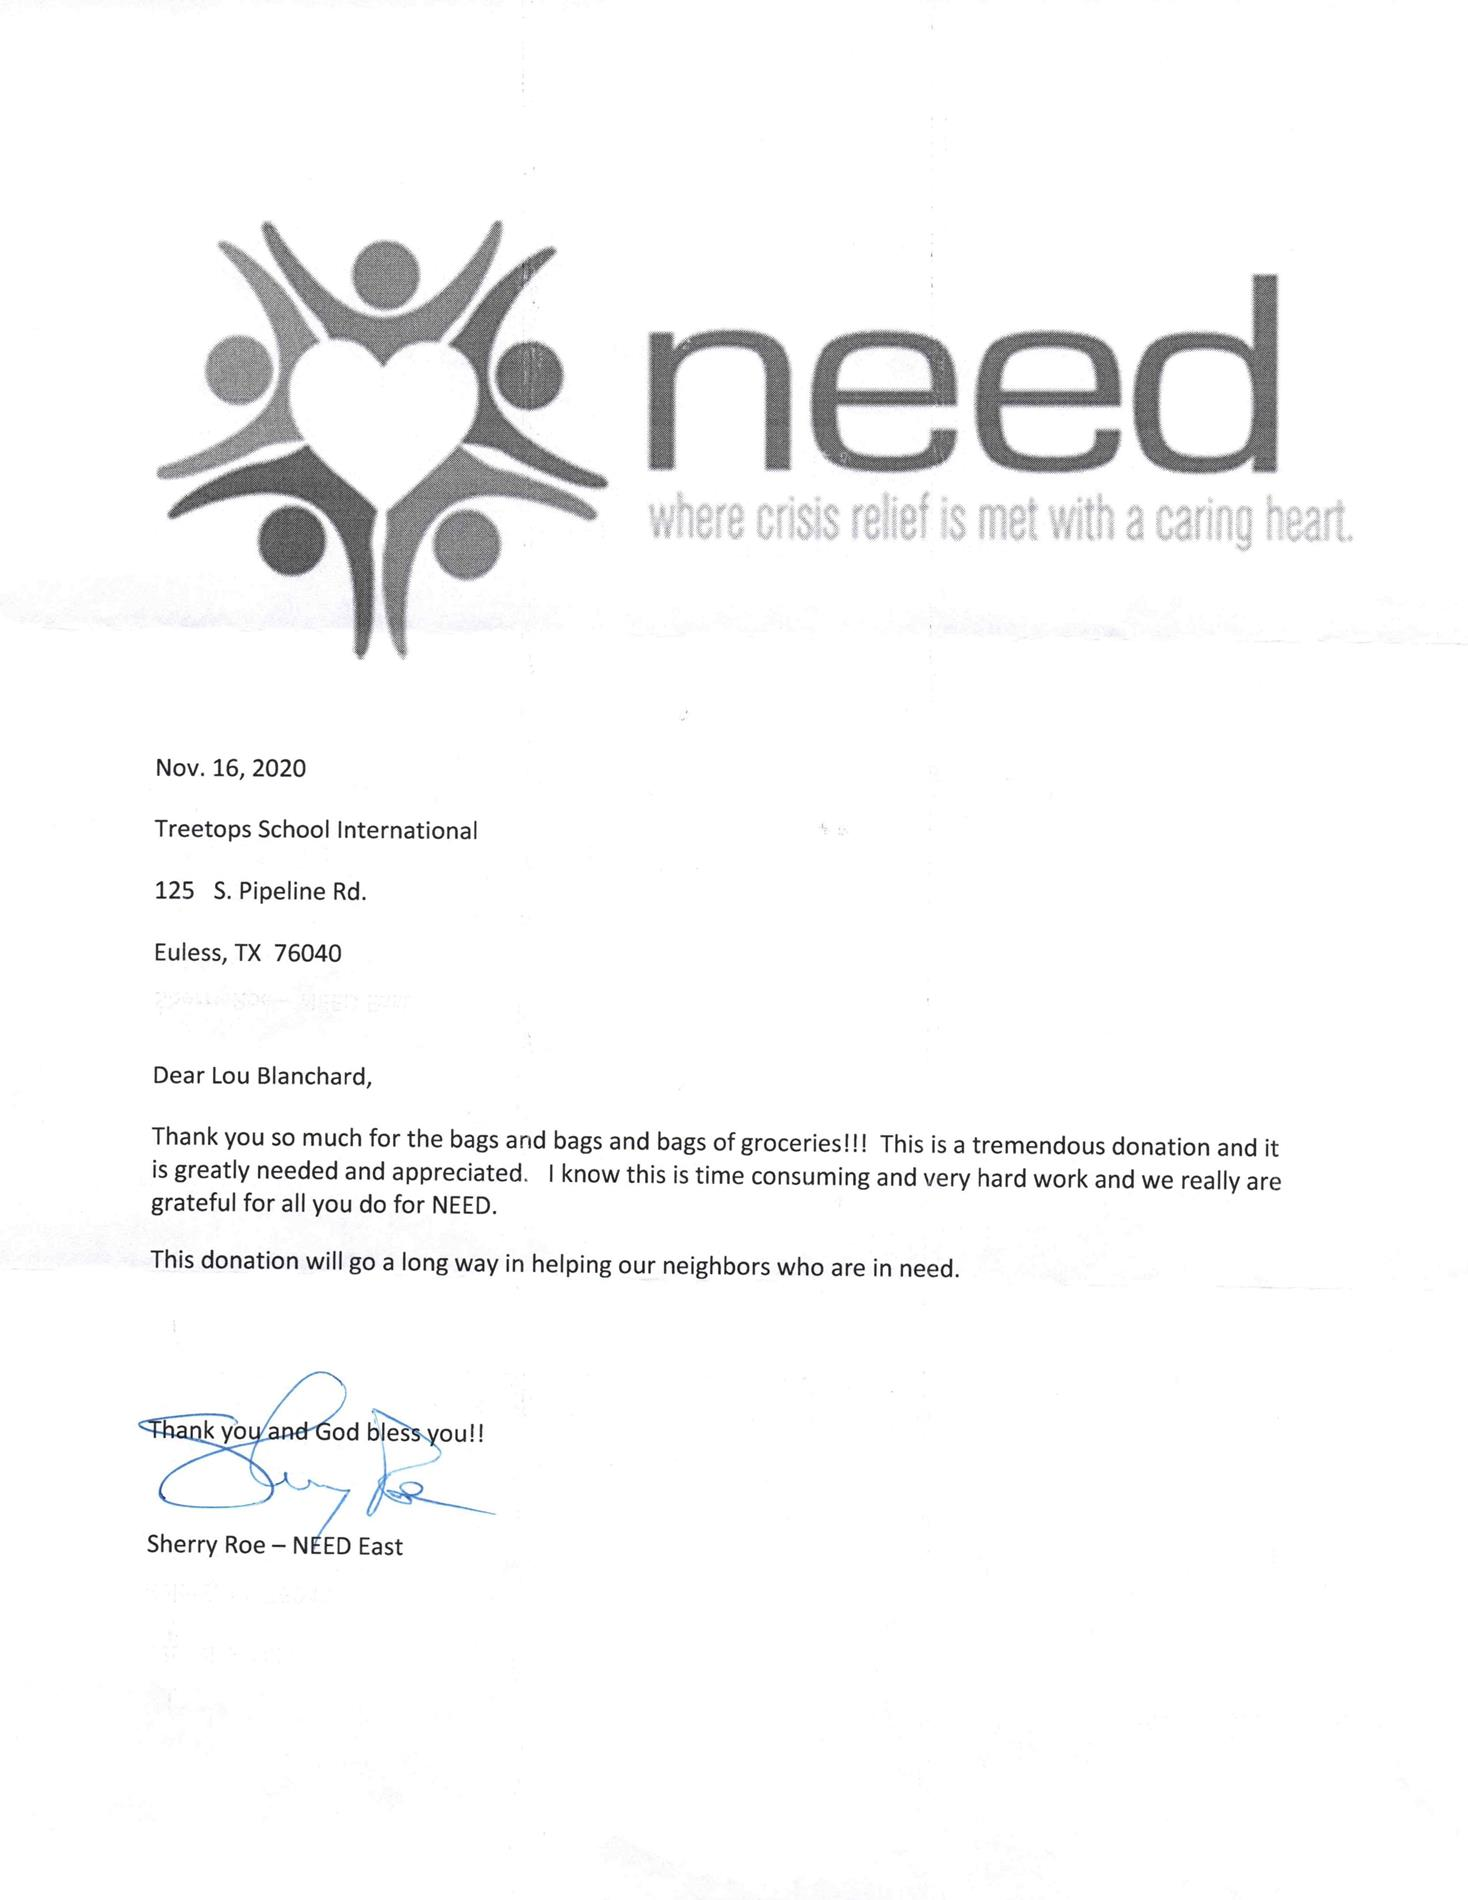 Community Need Letter